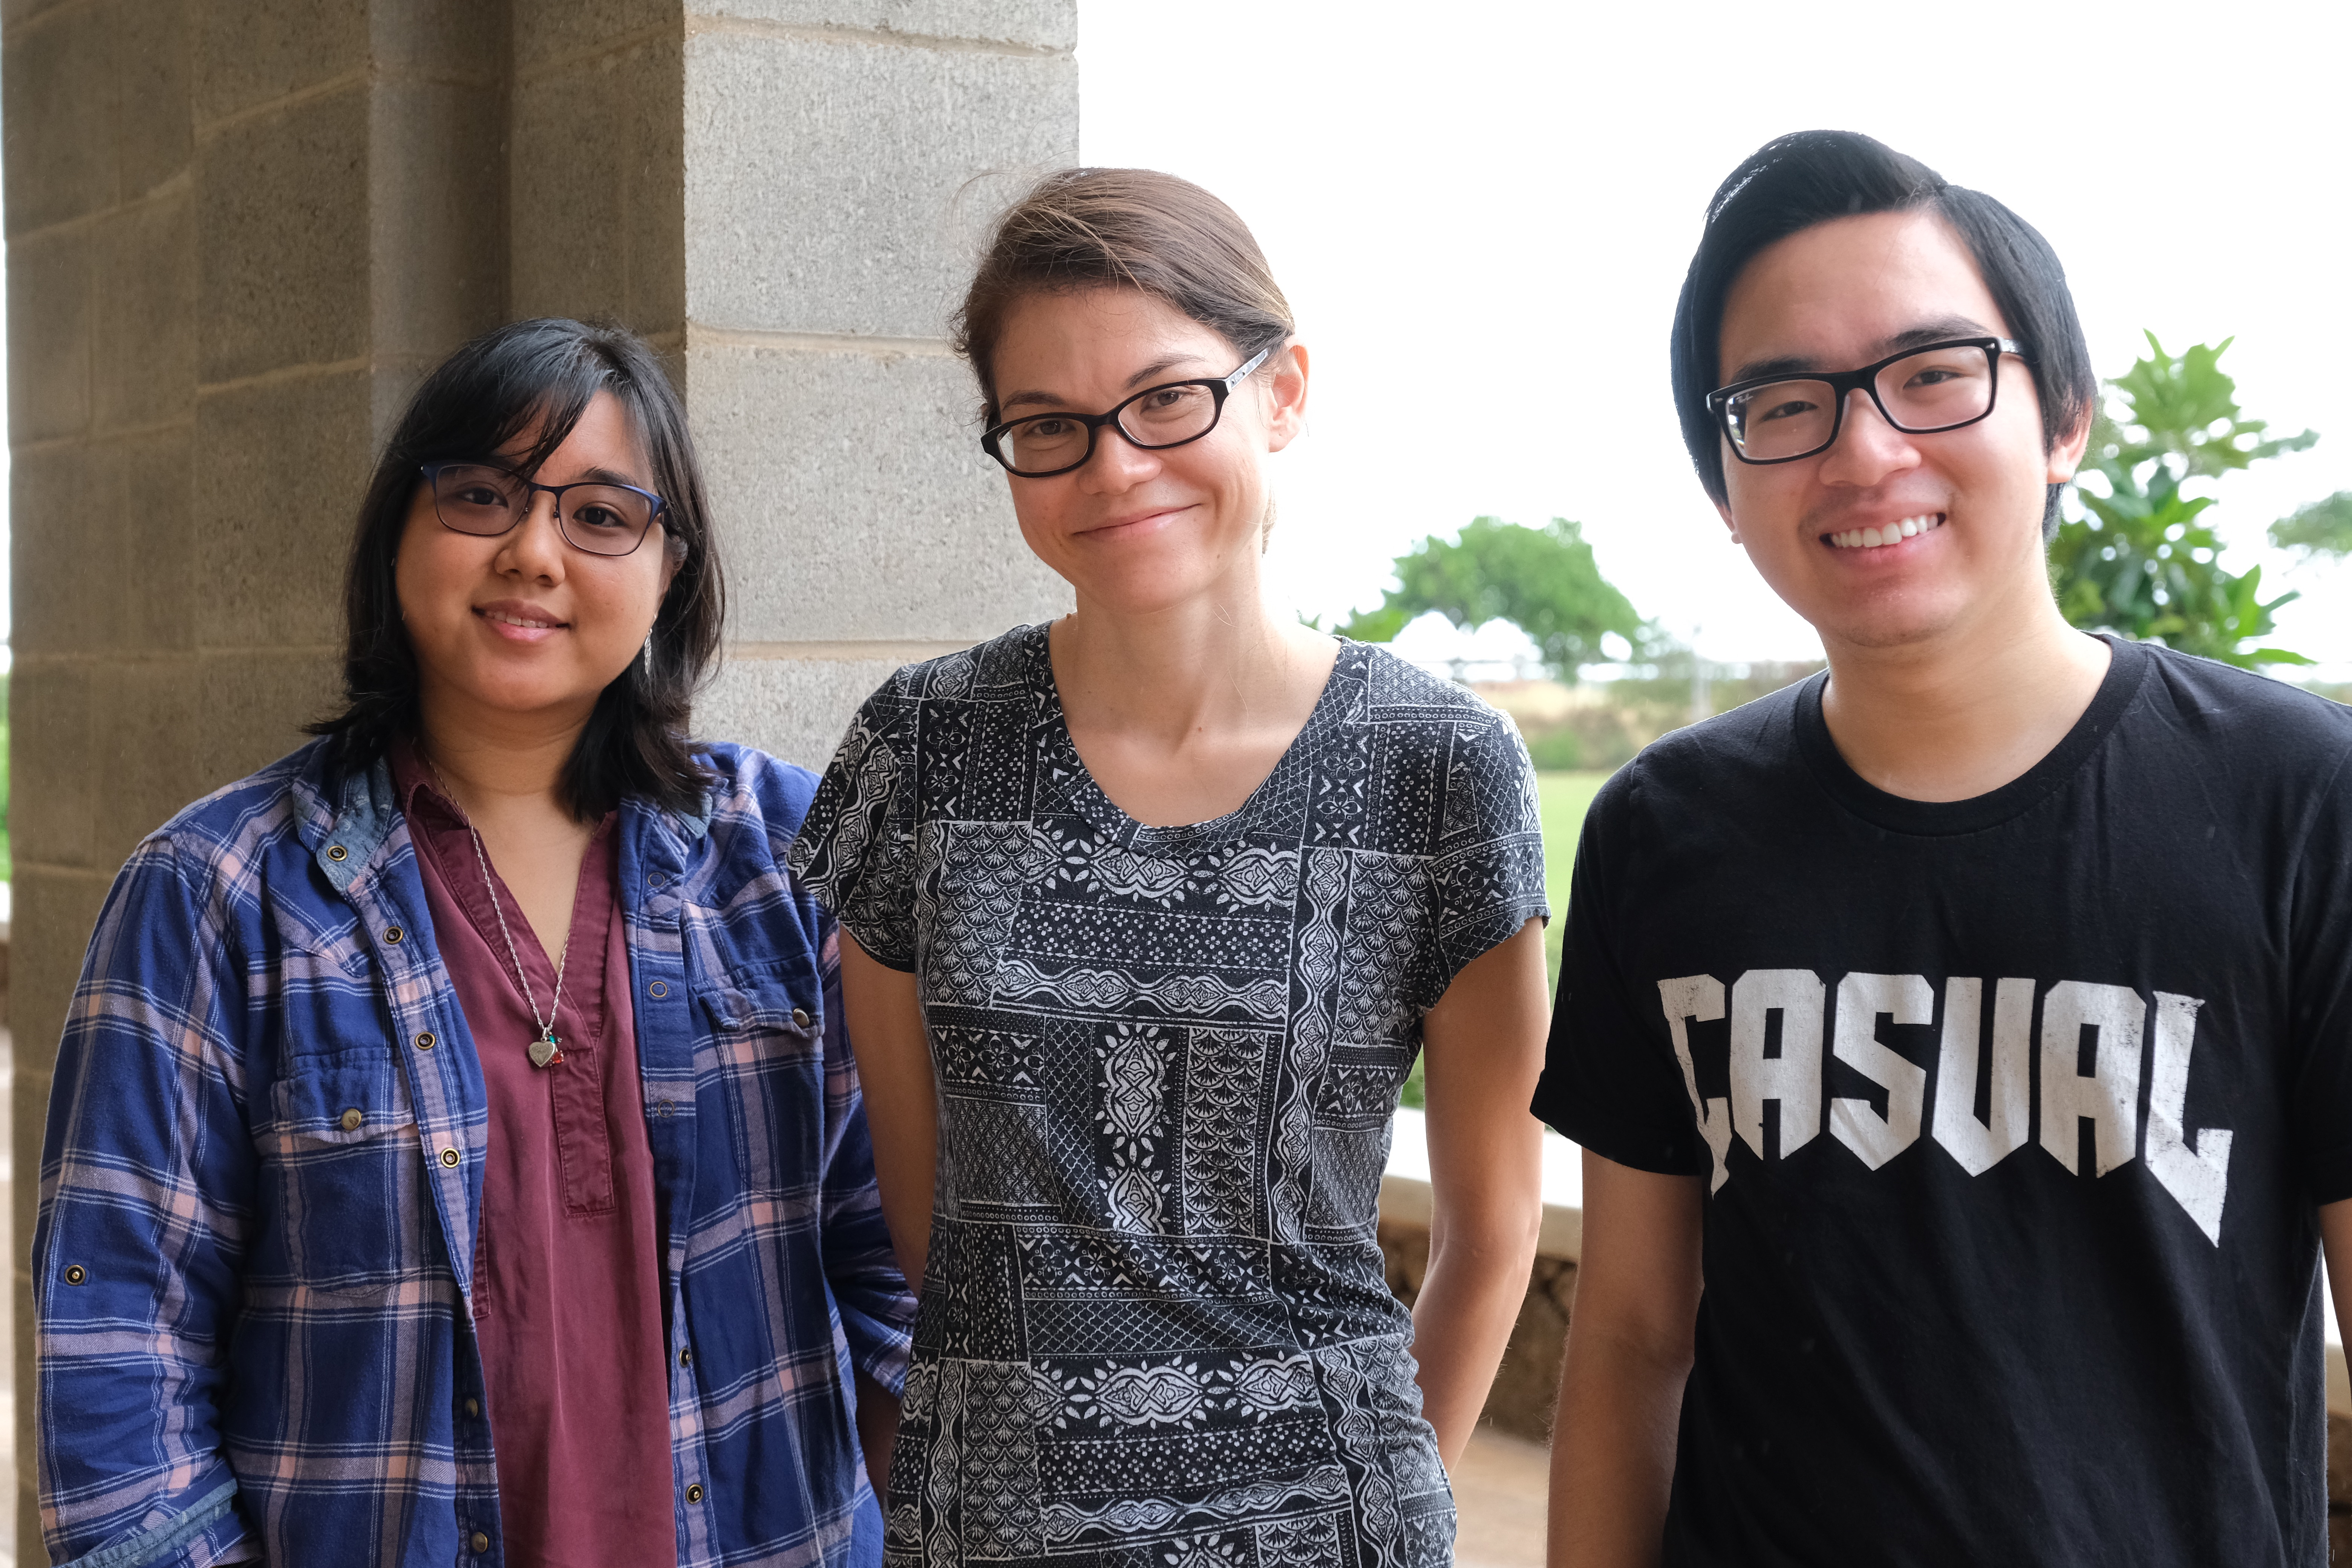 Outdoor group photo of a professor standing between two of her students.